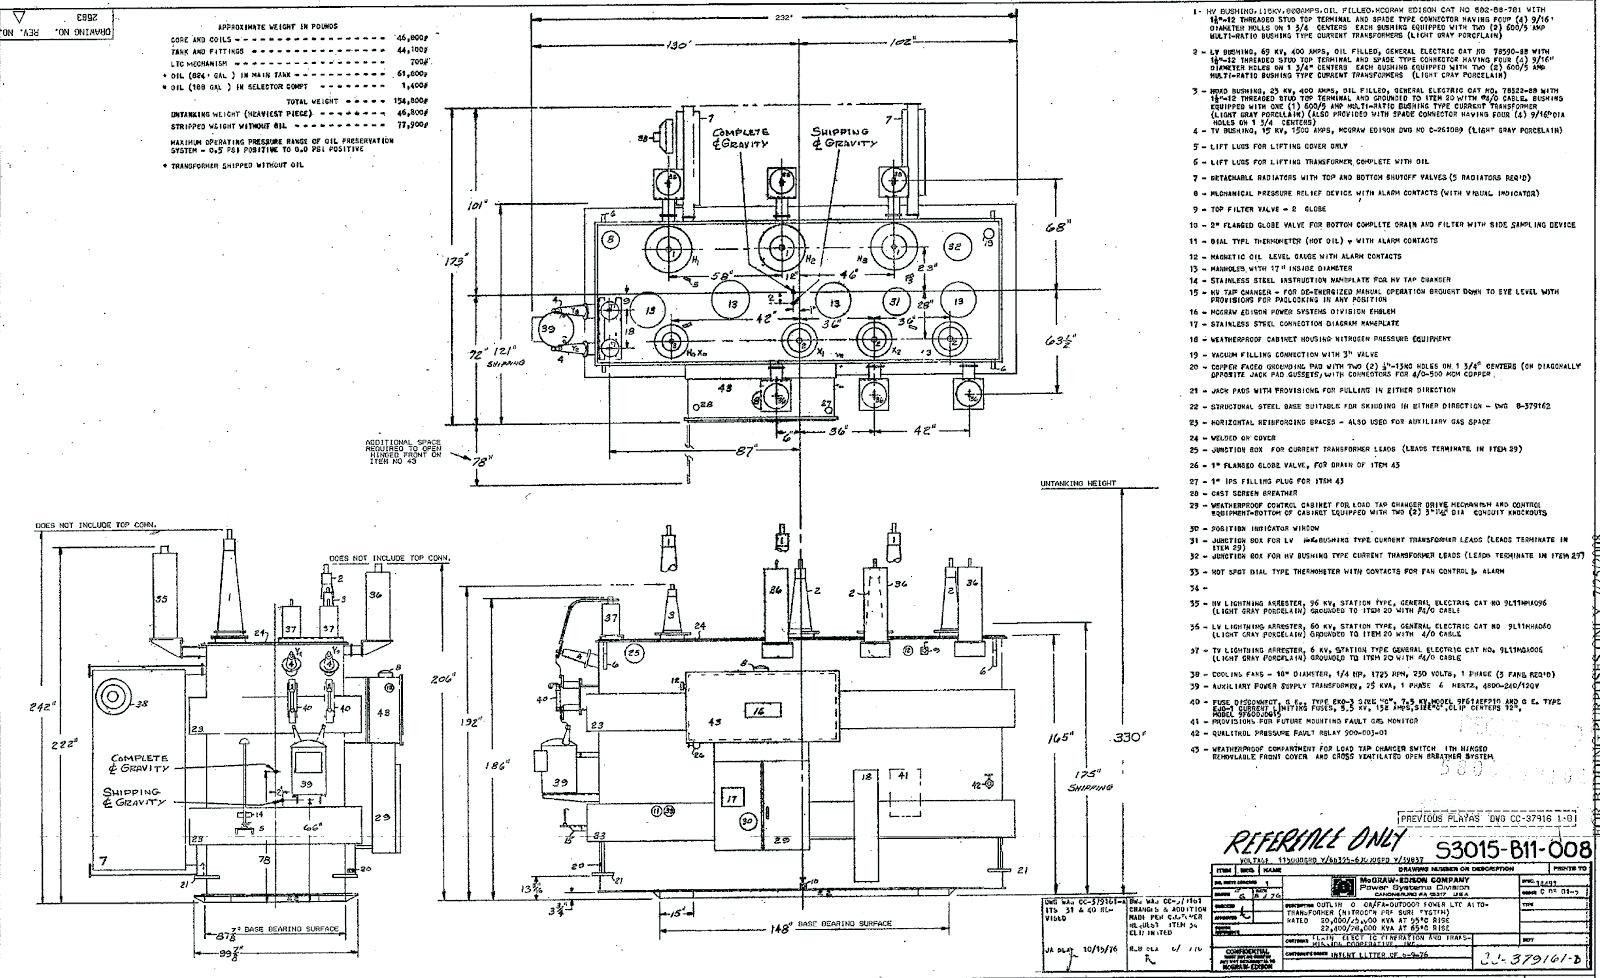 93 ford ranger fuse diagram rj11 to rj45 cable wiring 1991 tempo auto